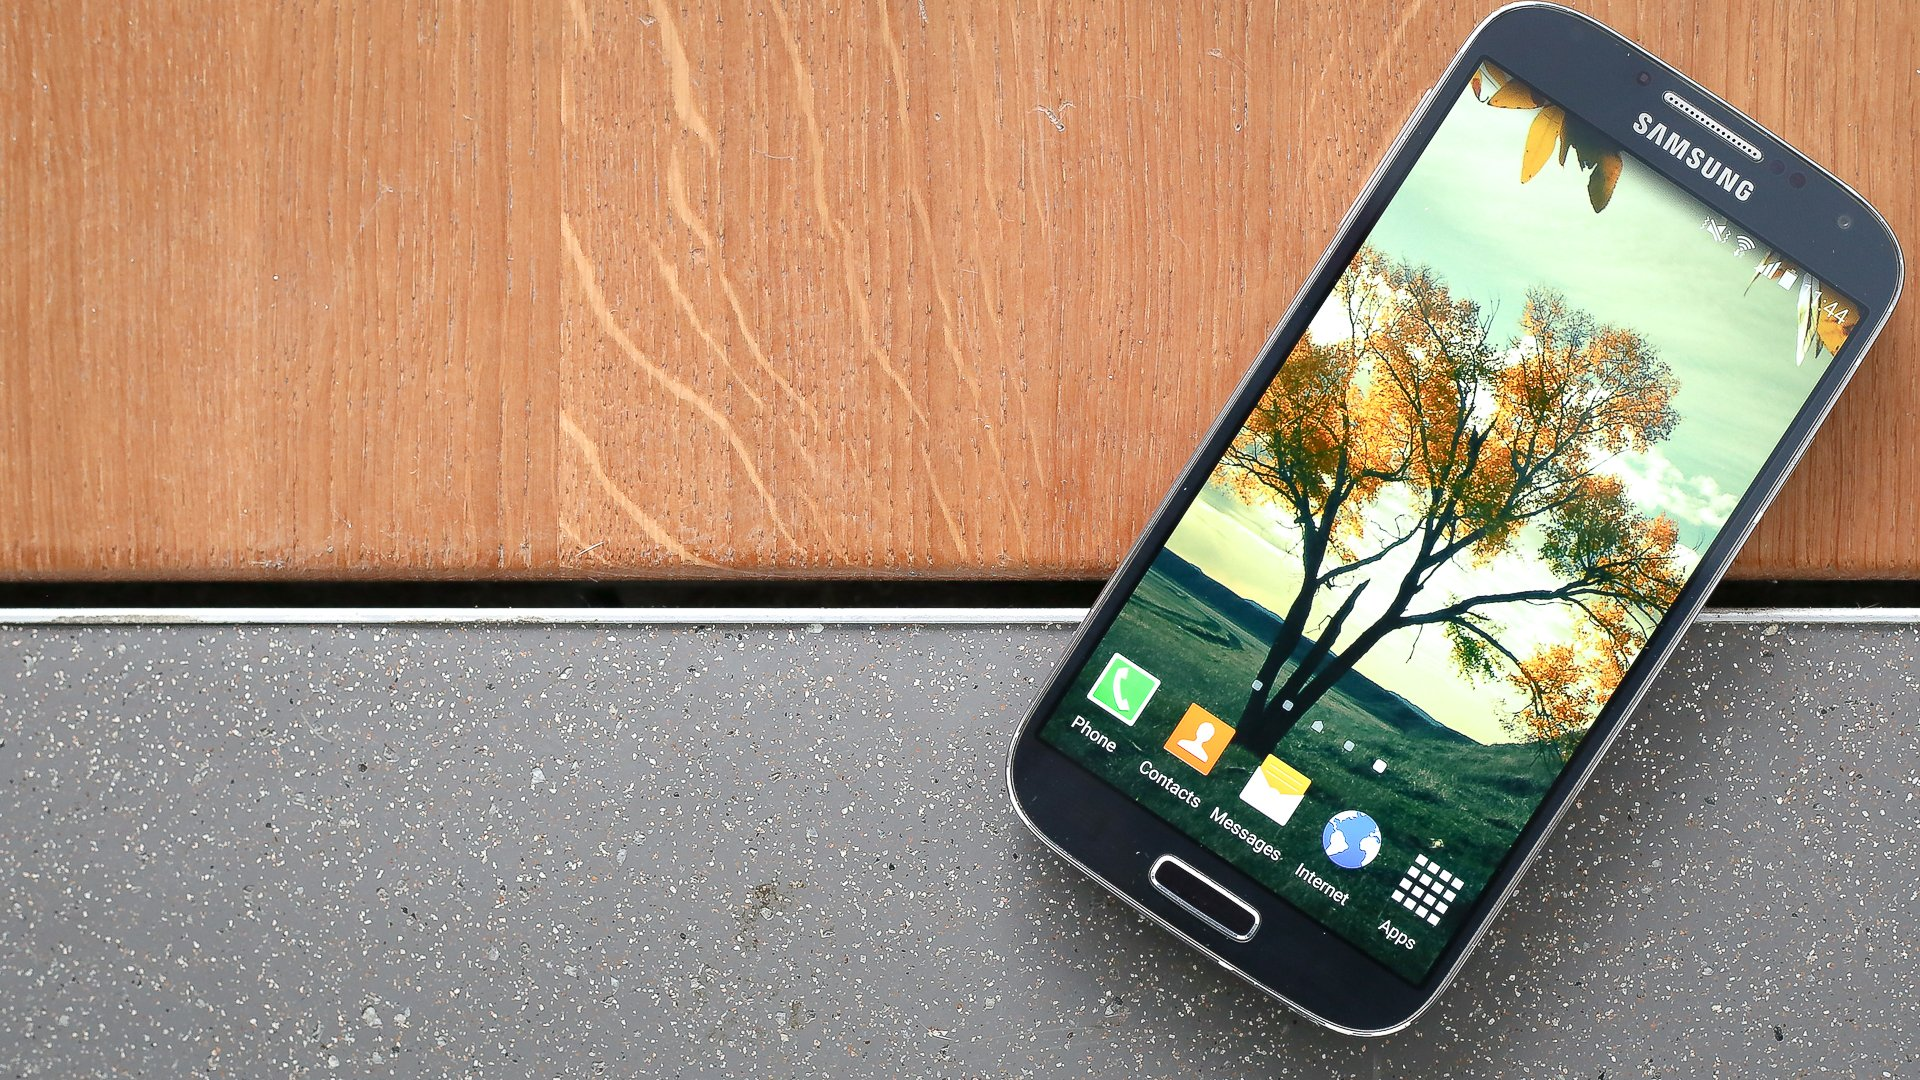 Android Marshmallow Galaxy S4